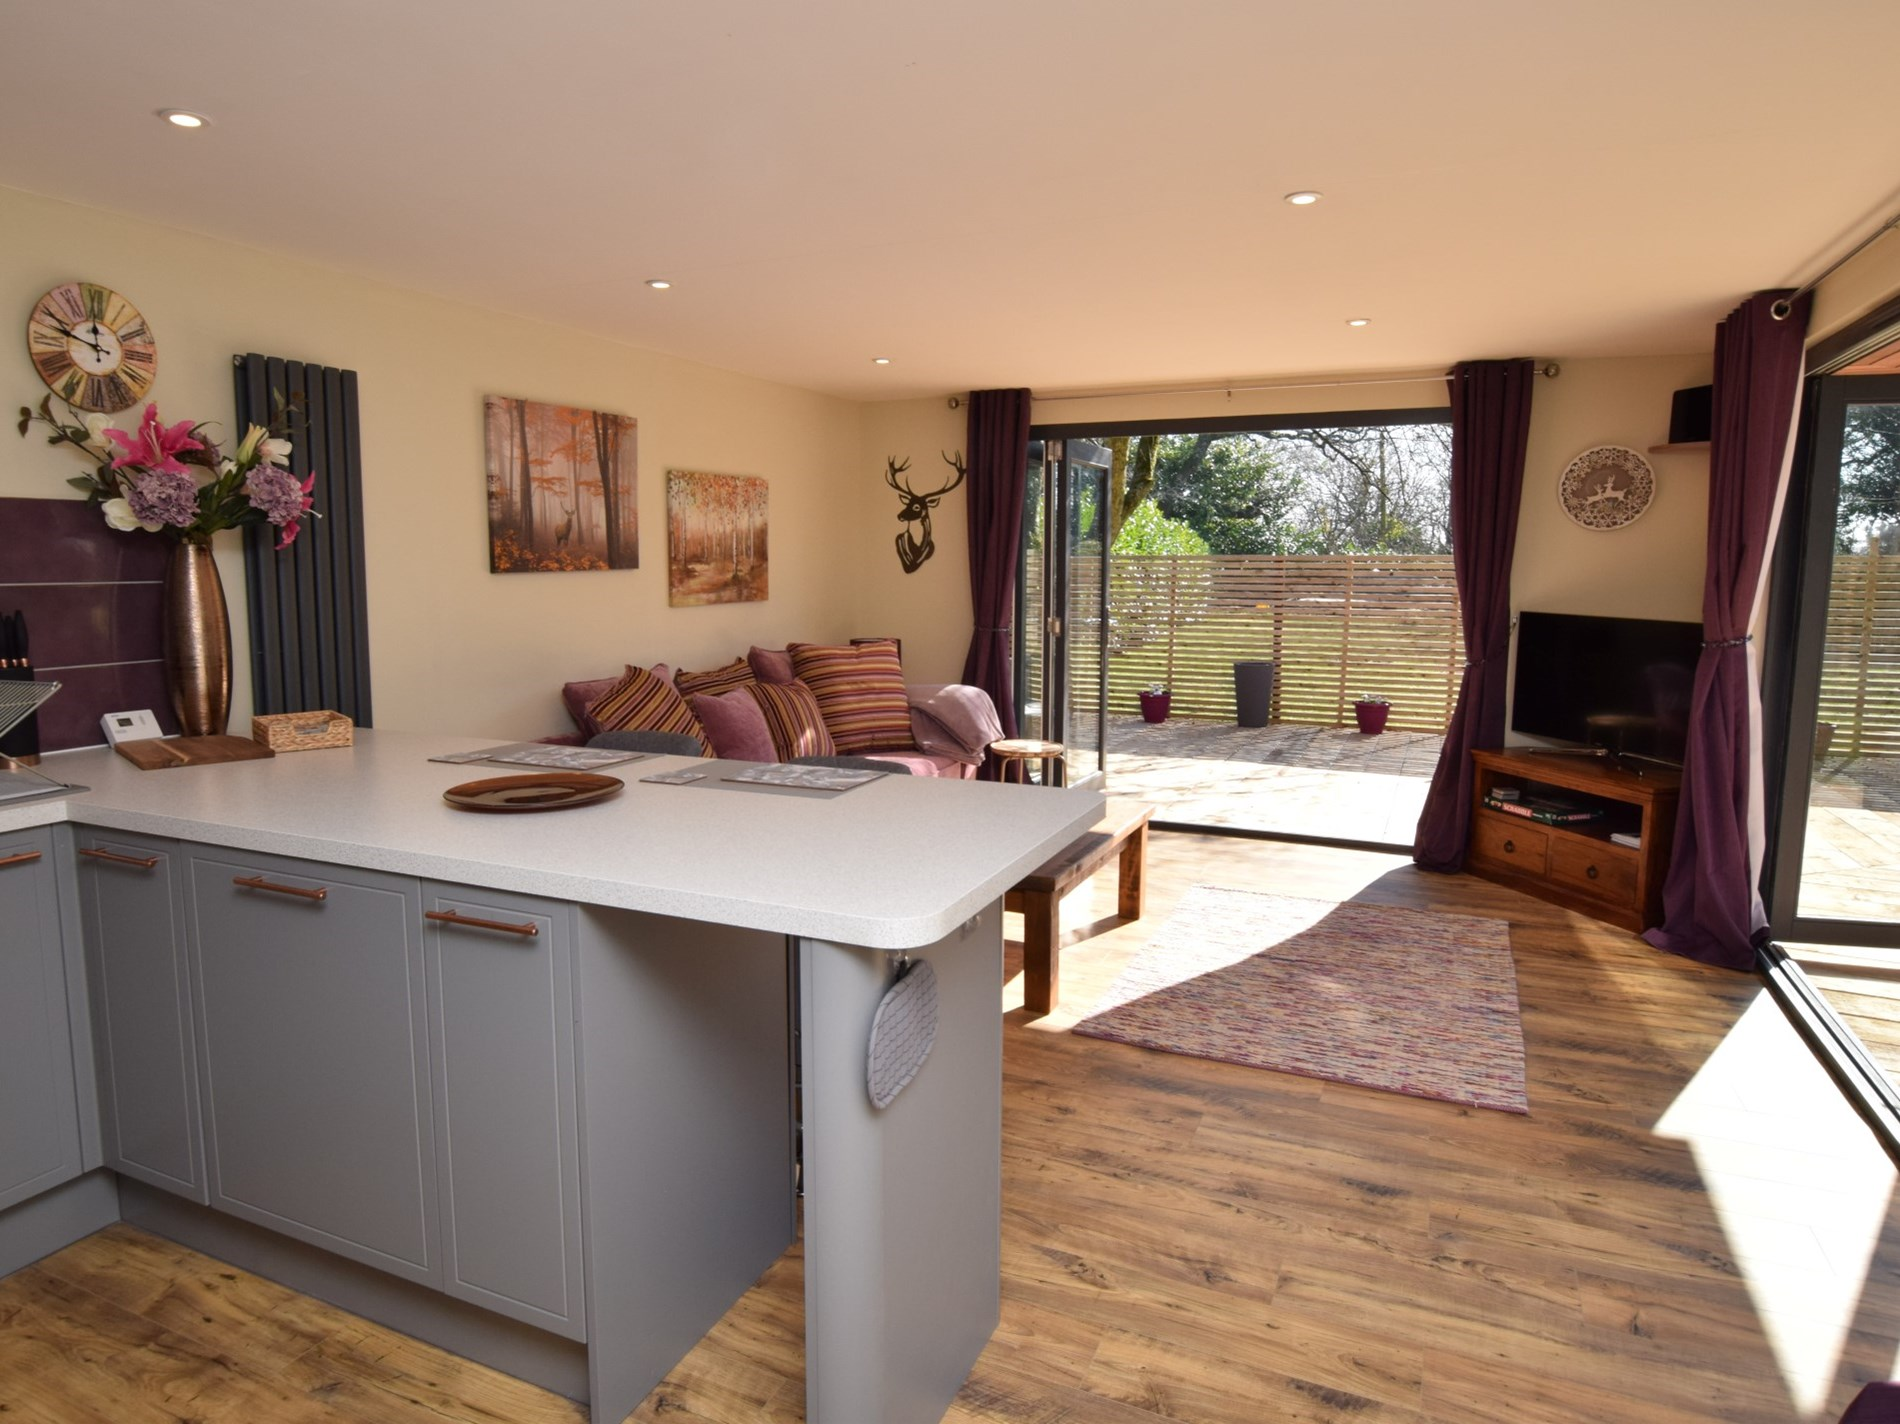 Step into this inviting open plan space